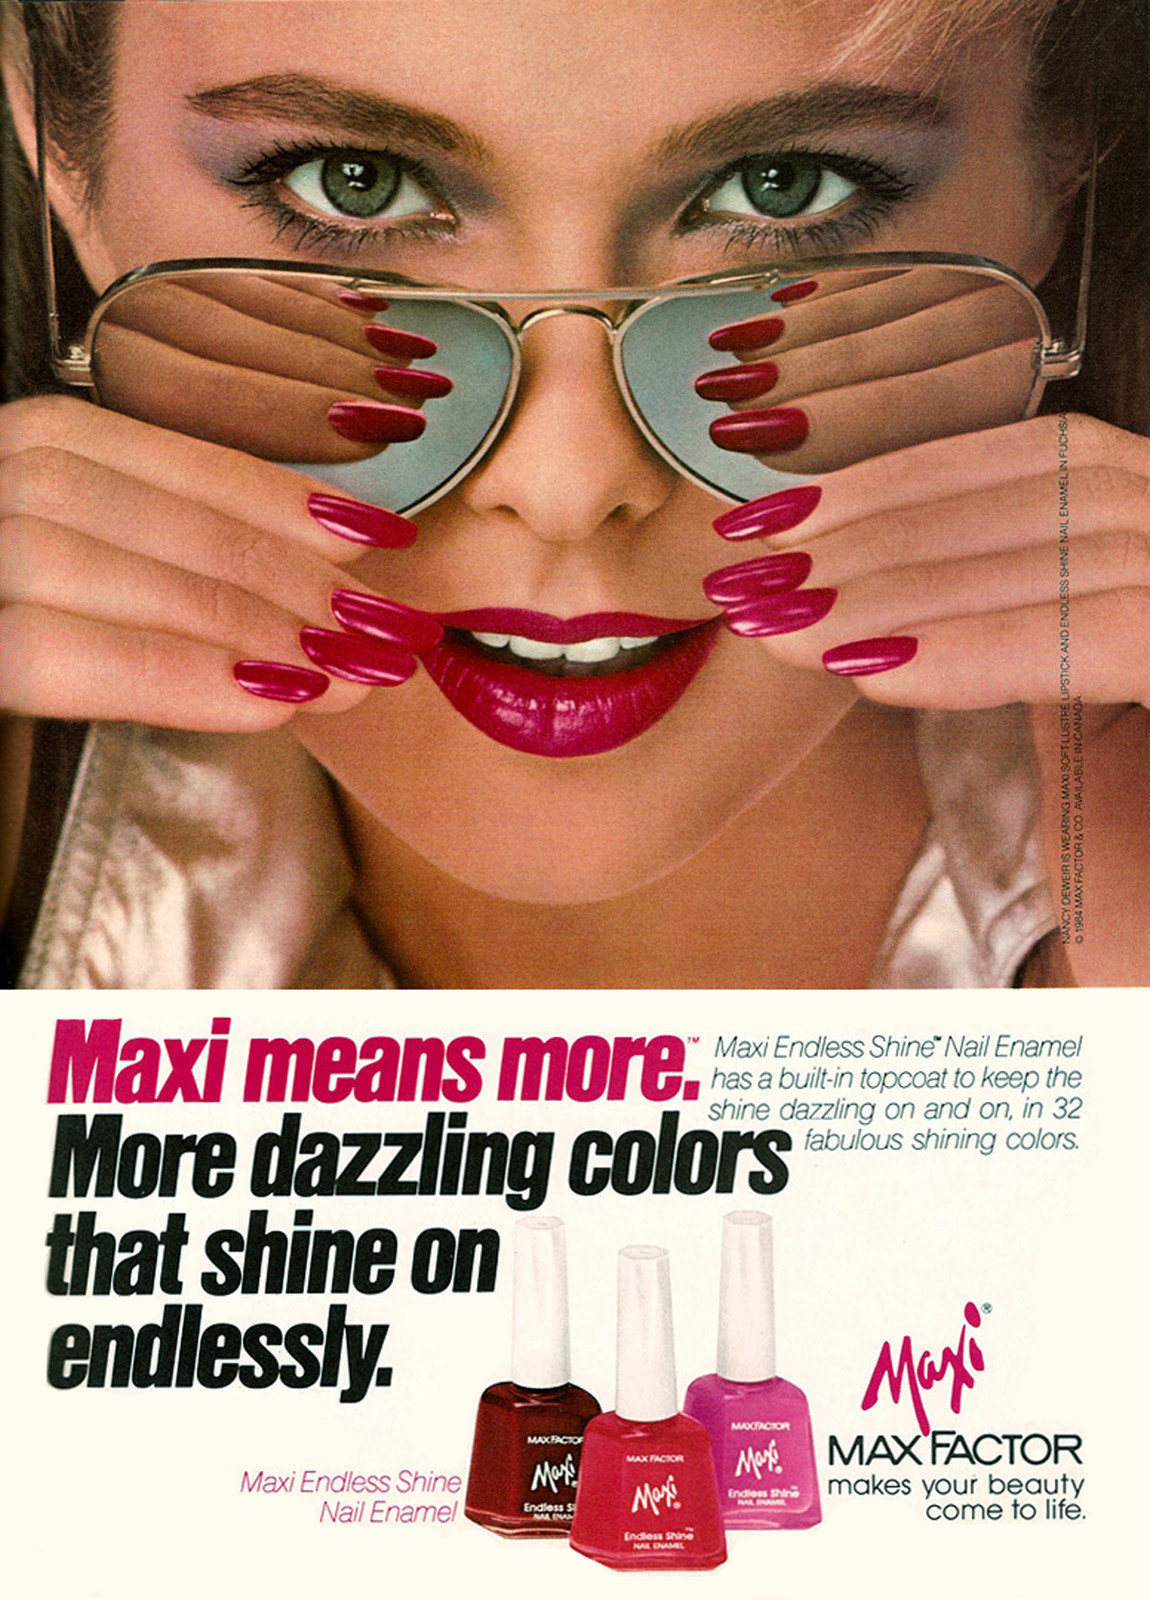 Ads from the 1980s geared toward women